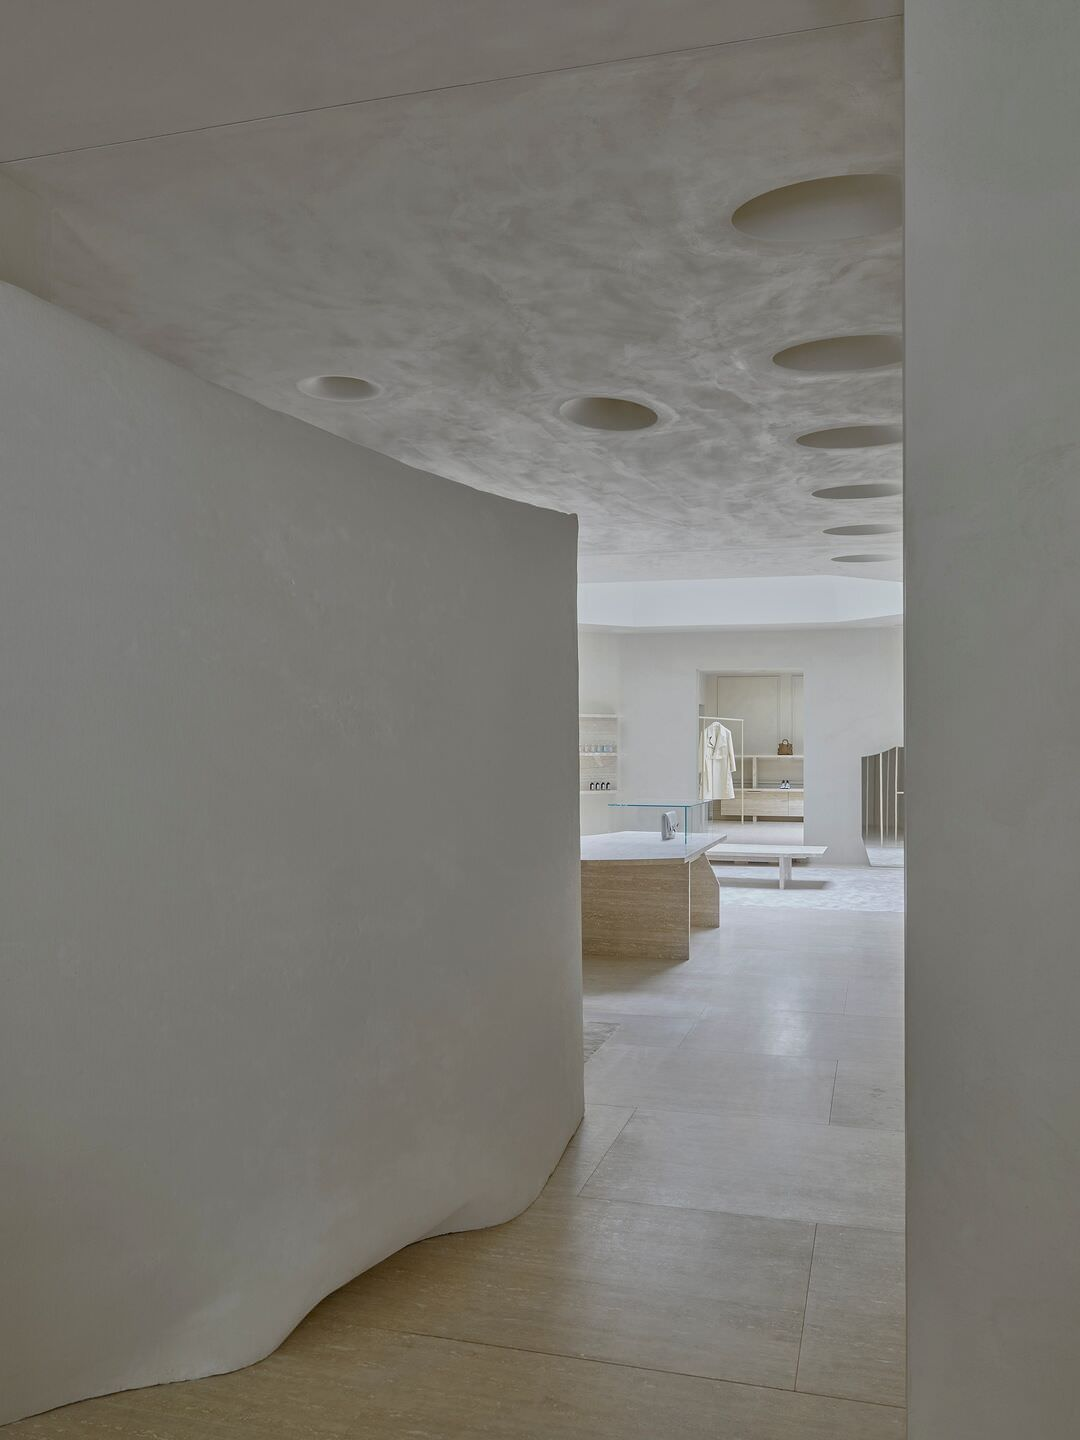 Maison Margiela Introduces New Store Concept by Studio Anne Holtrop with London Flagship.